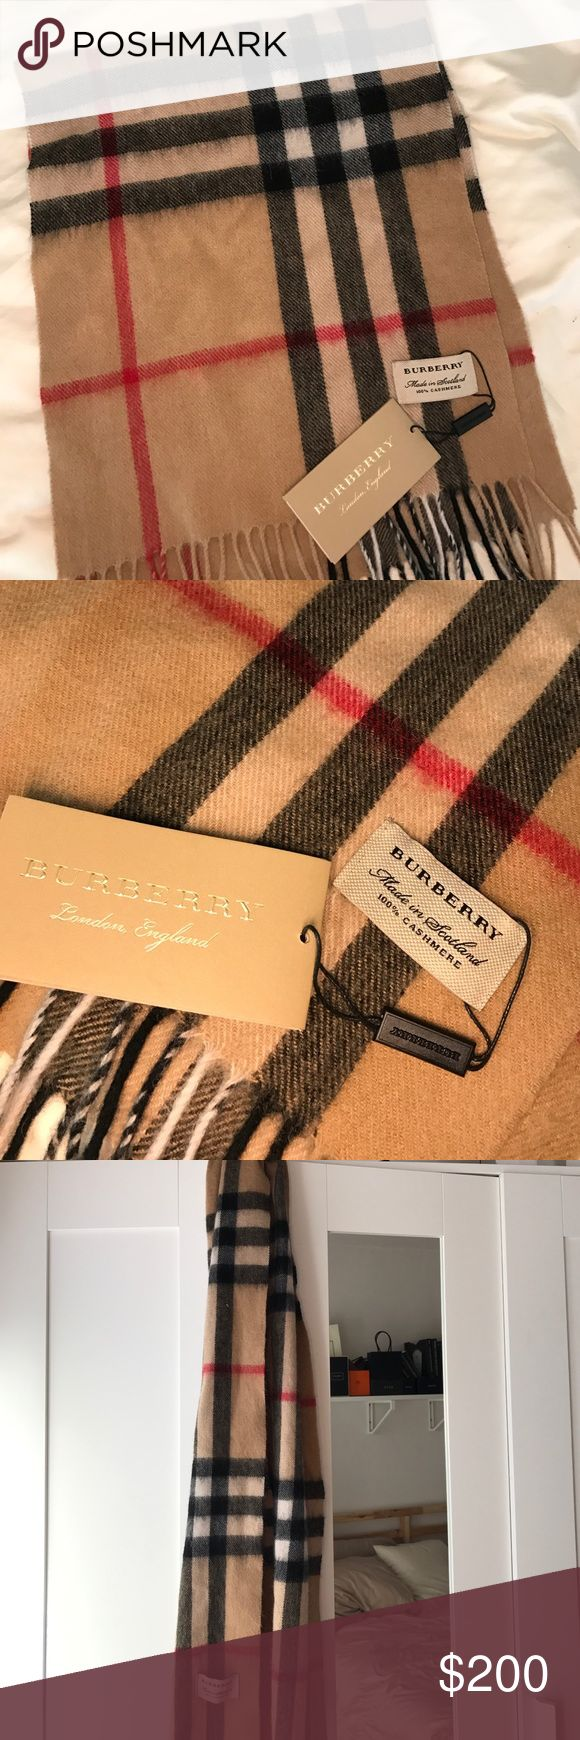 *offer* Burberry Cashmere Giant Check Camel Scarf There is no care tag so I am unsure of authenticity. Made of pure cashmere. Make me an offer! Burberry Accessories Scarves & Wraps